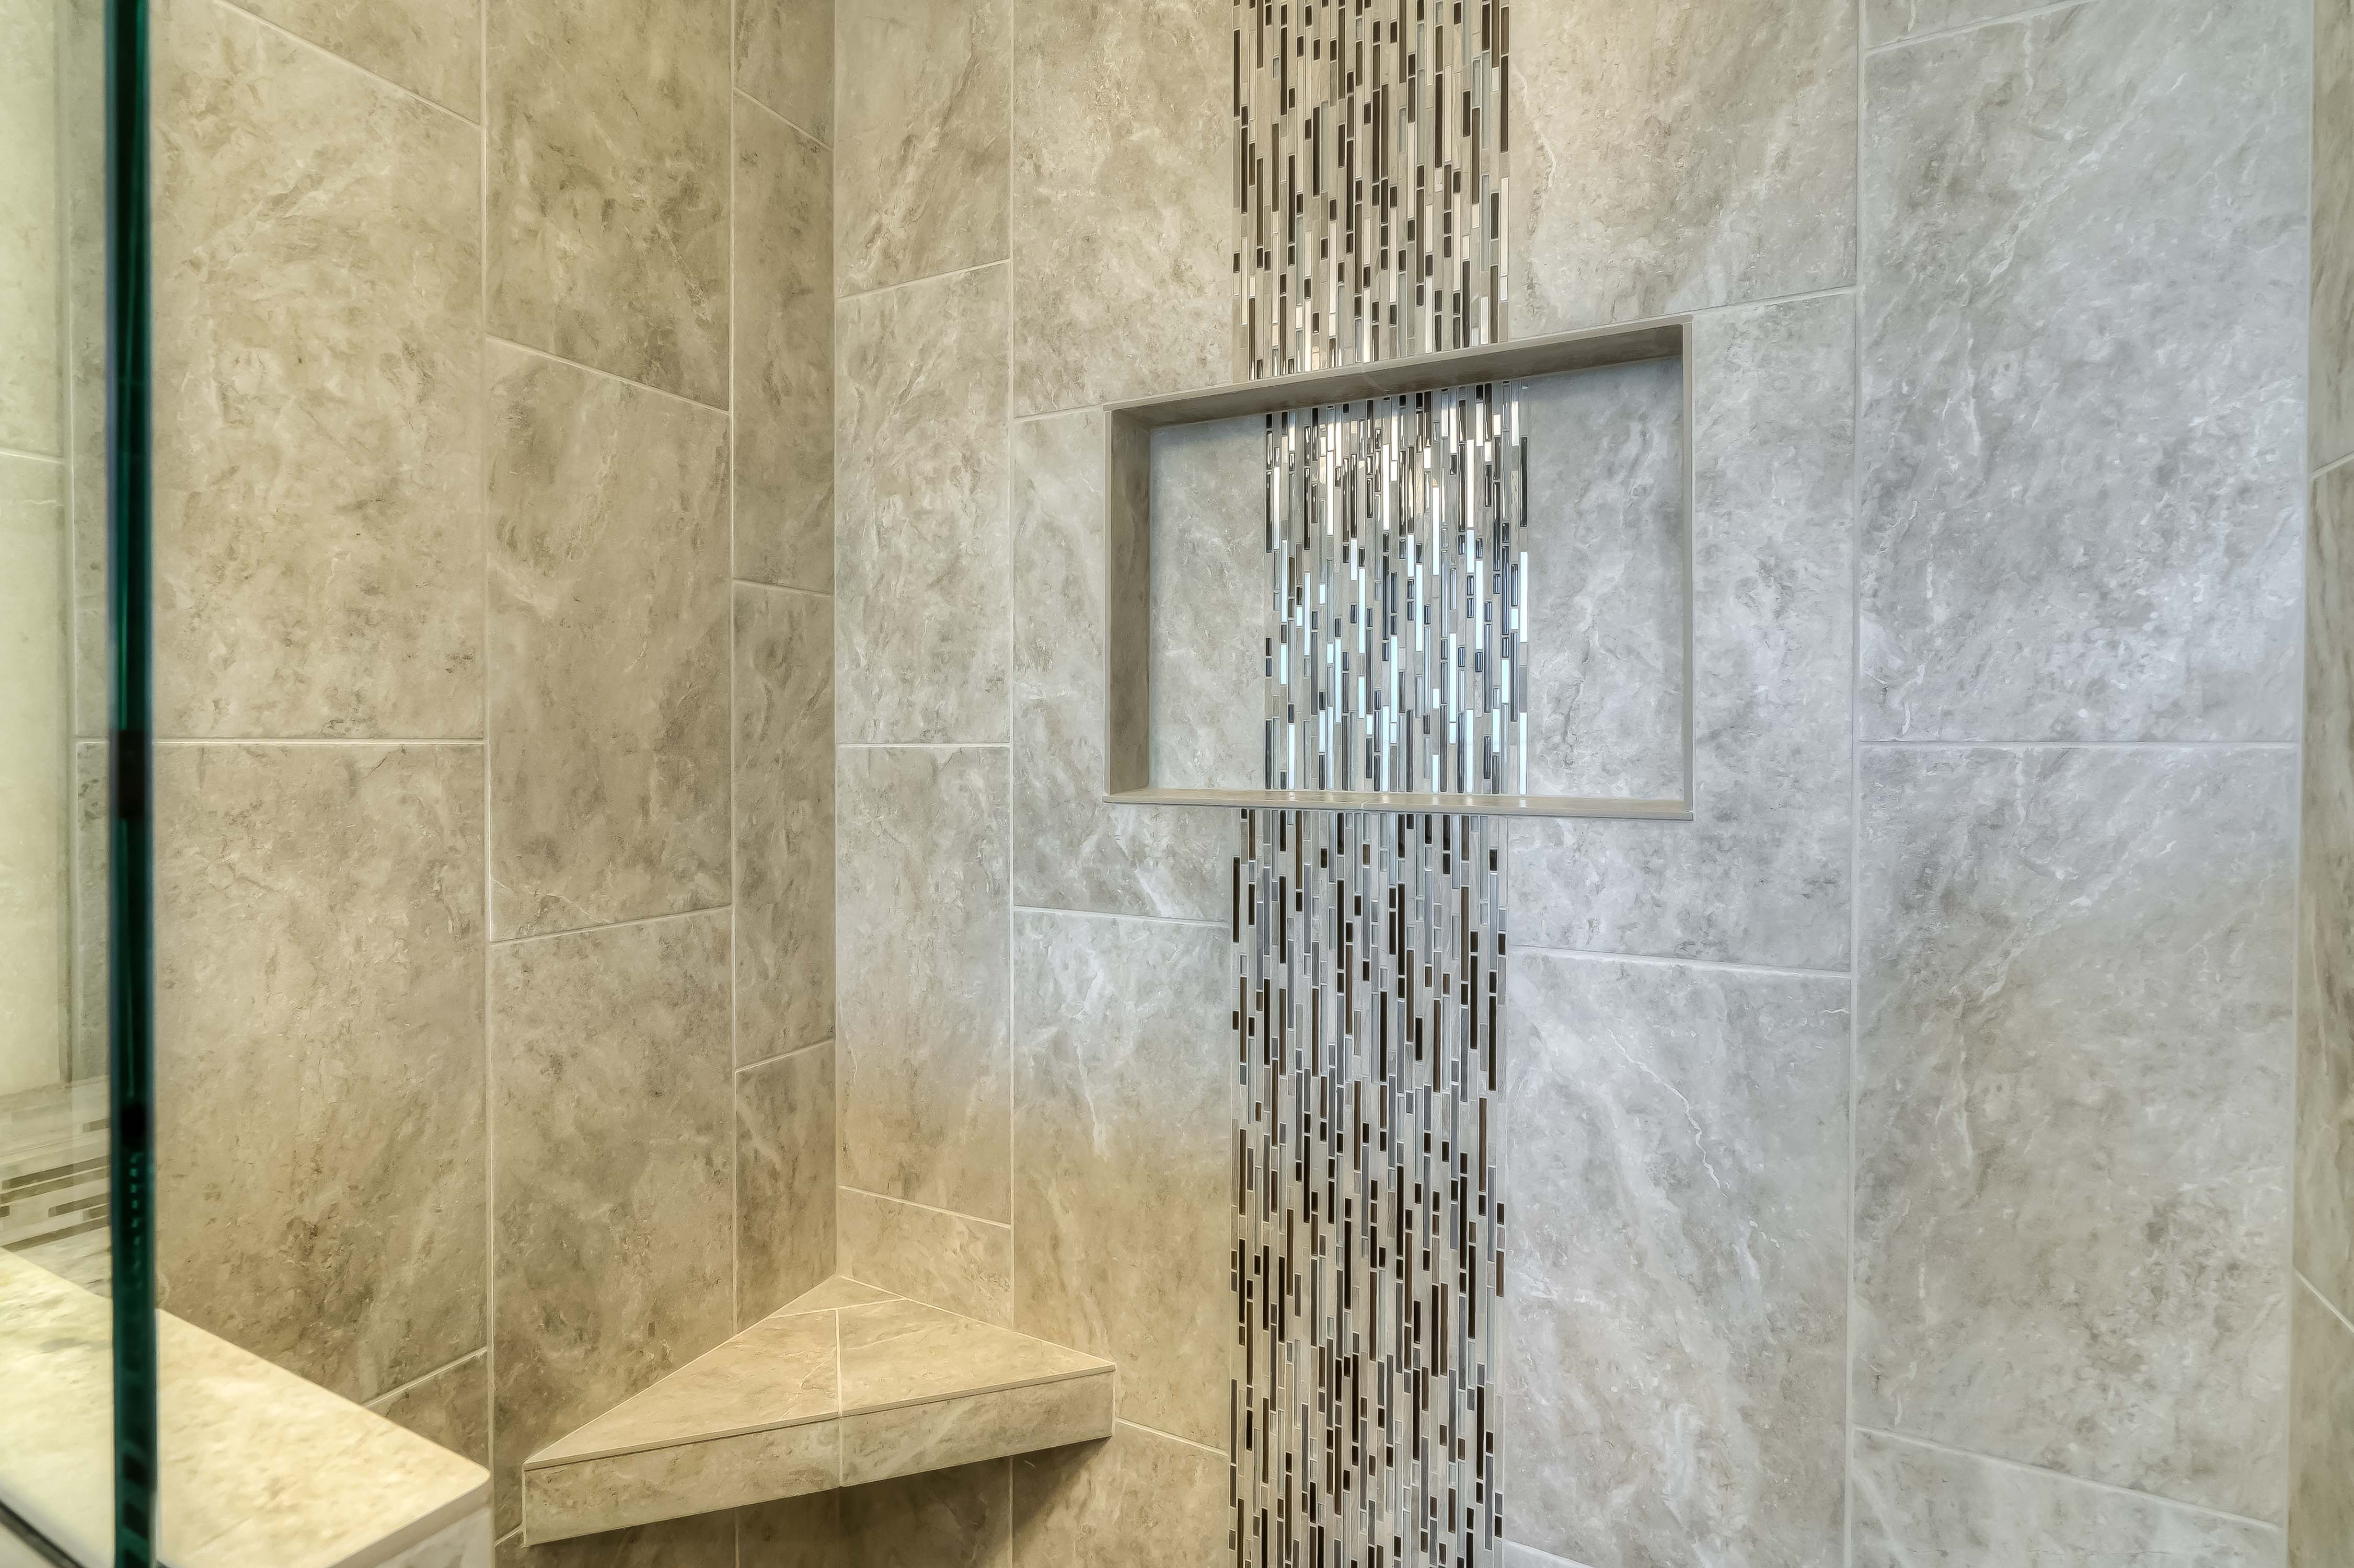 lot 10 shower 1